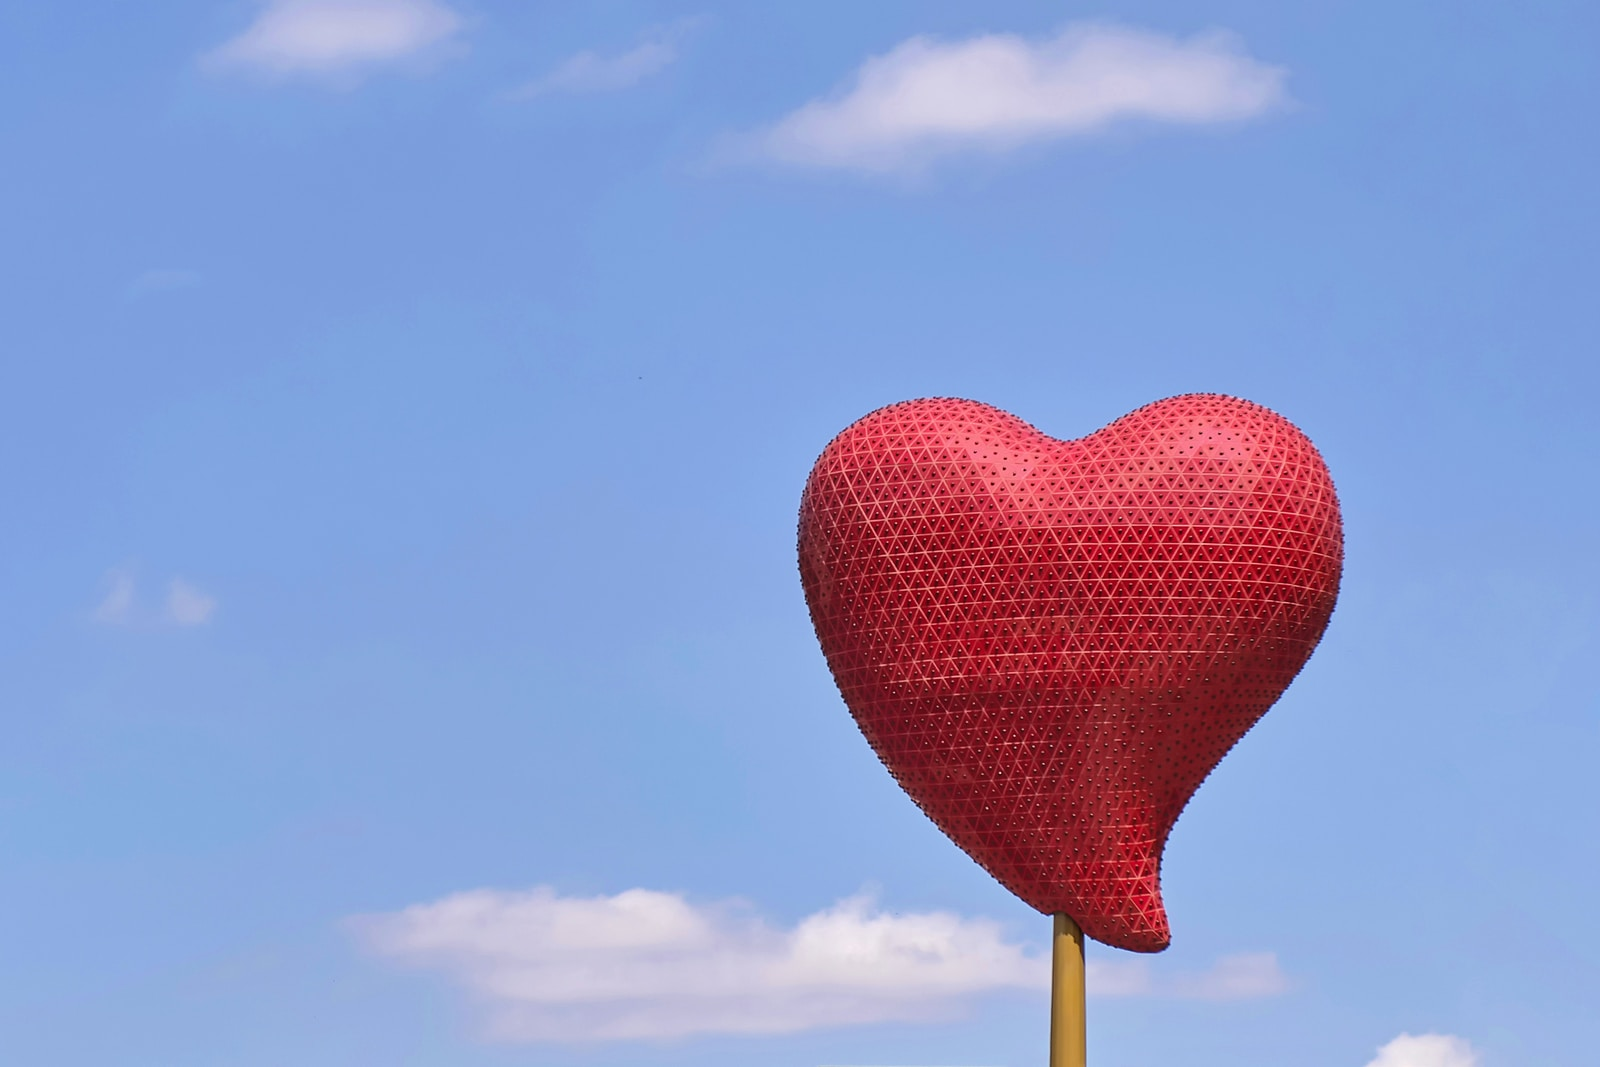 red heart balloon under blue sky during daytime